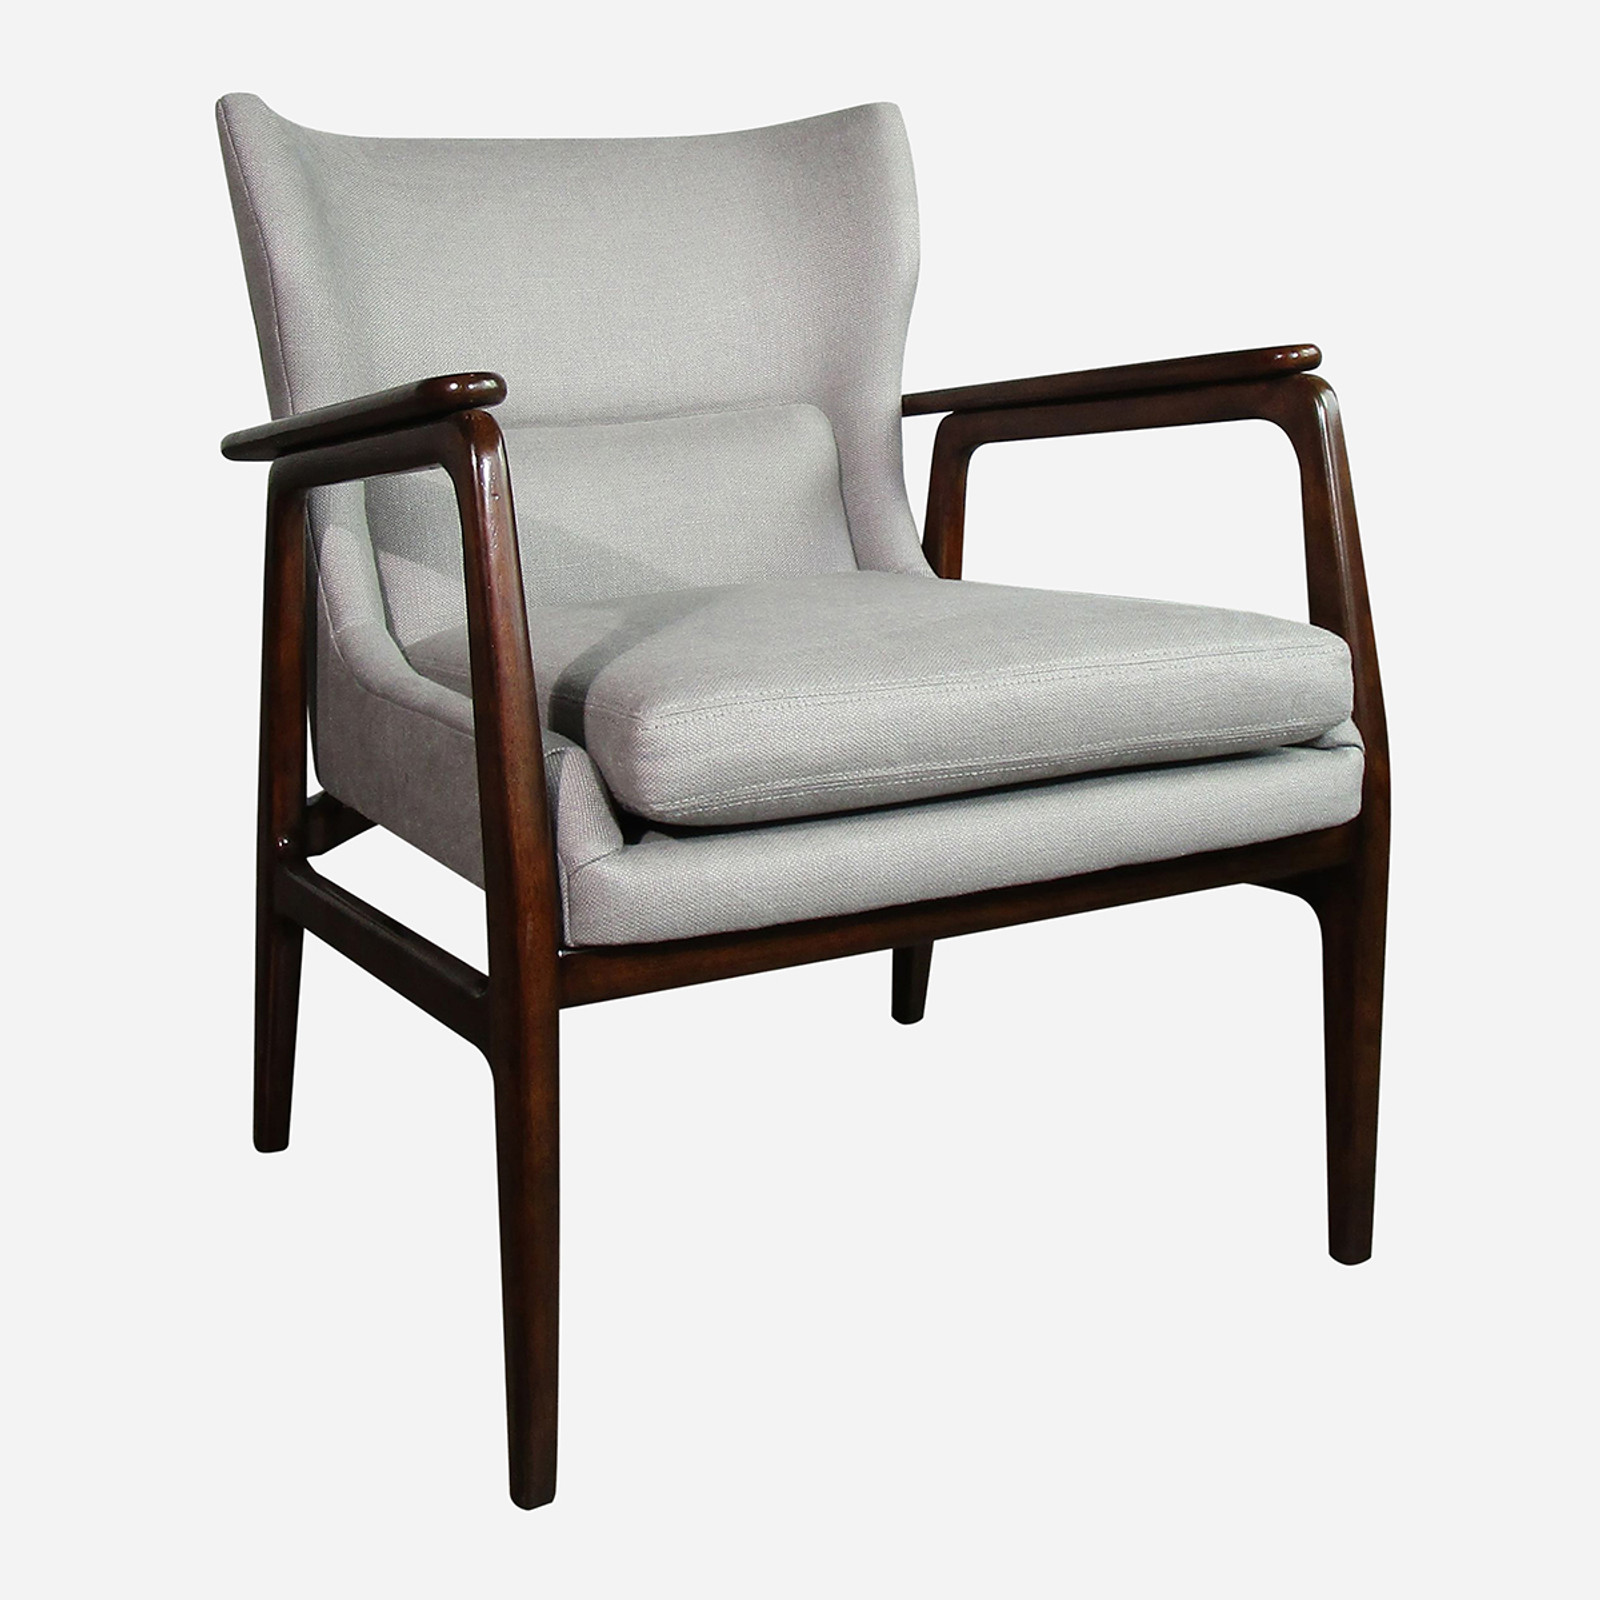 Gustav Chair